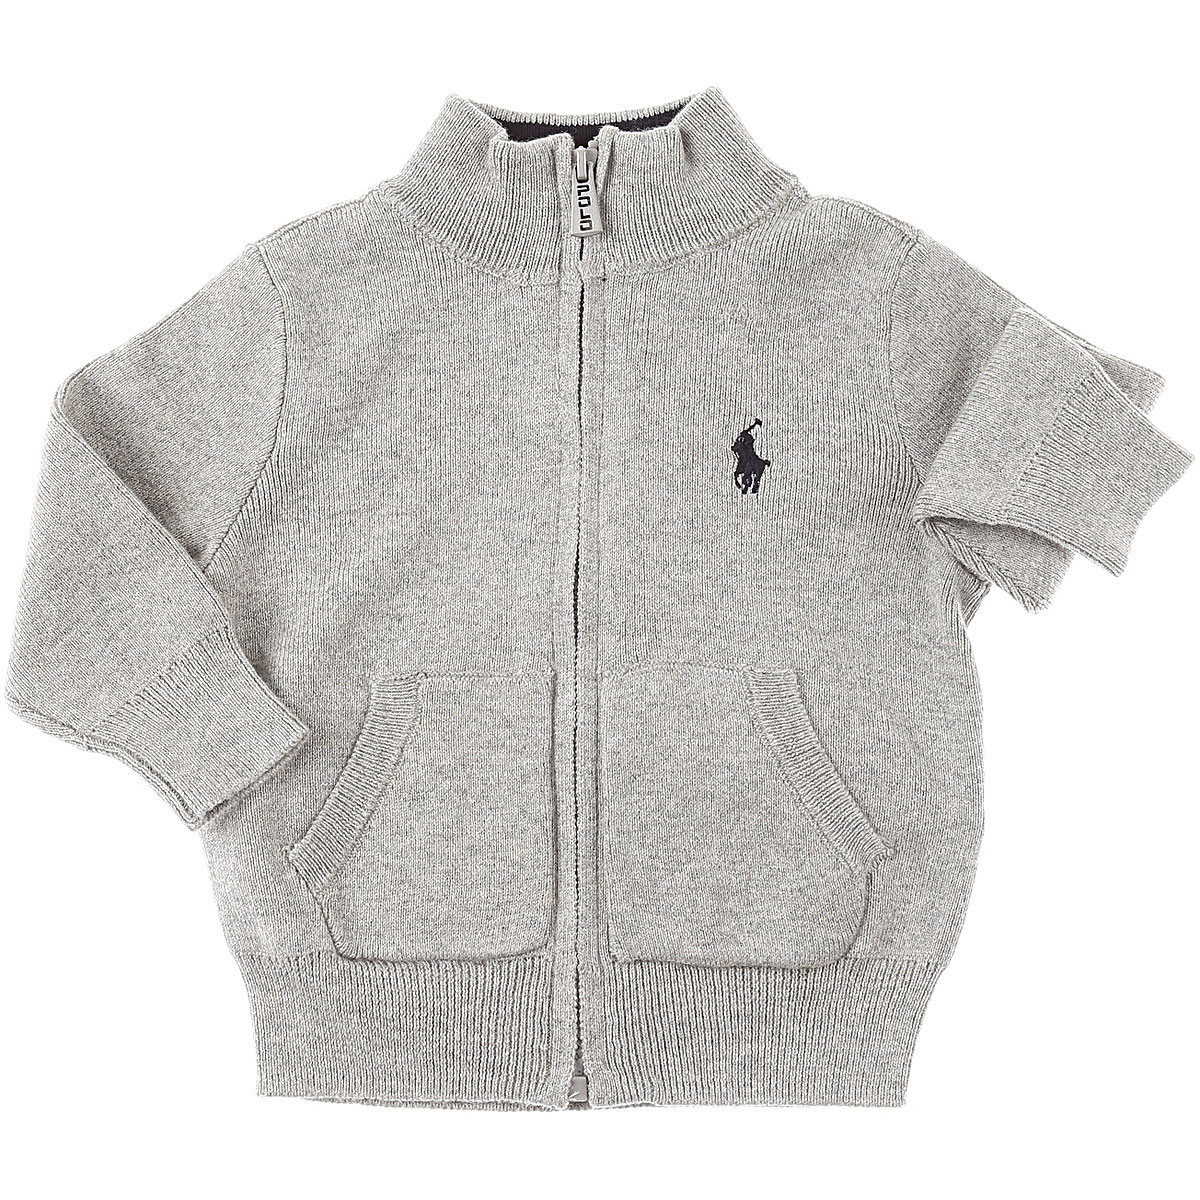 Ralph Lauren Baby Sweaters for Boys On Sale, Grey, Cotton, 2019, 12 M 2Y 6M 9M